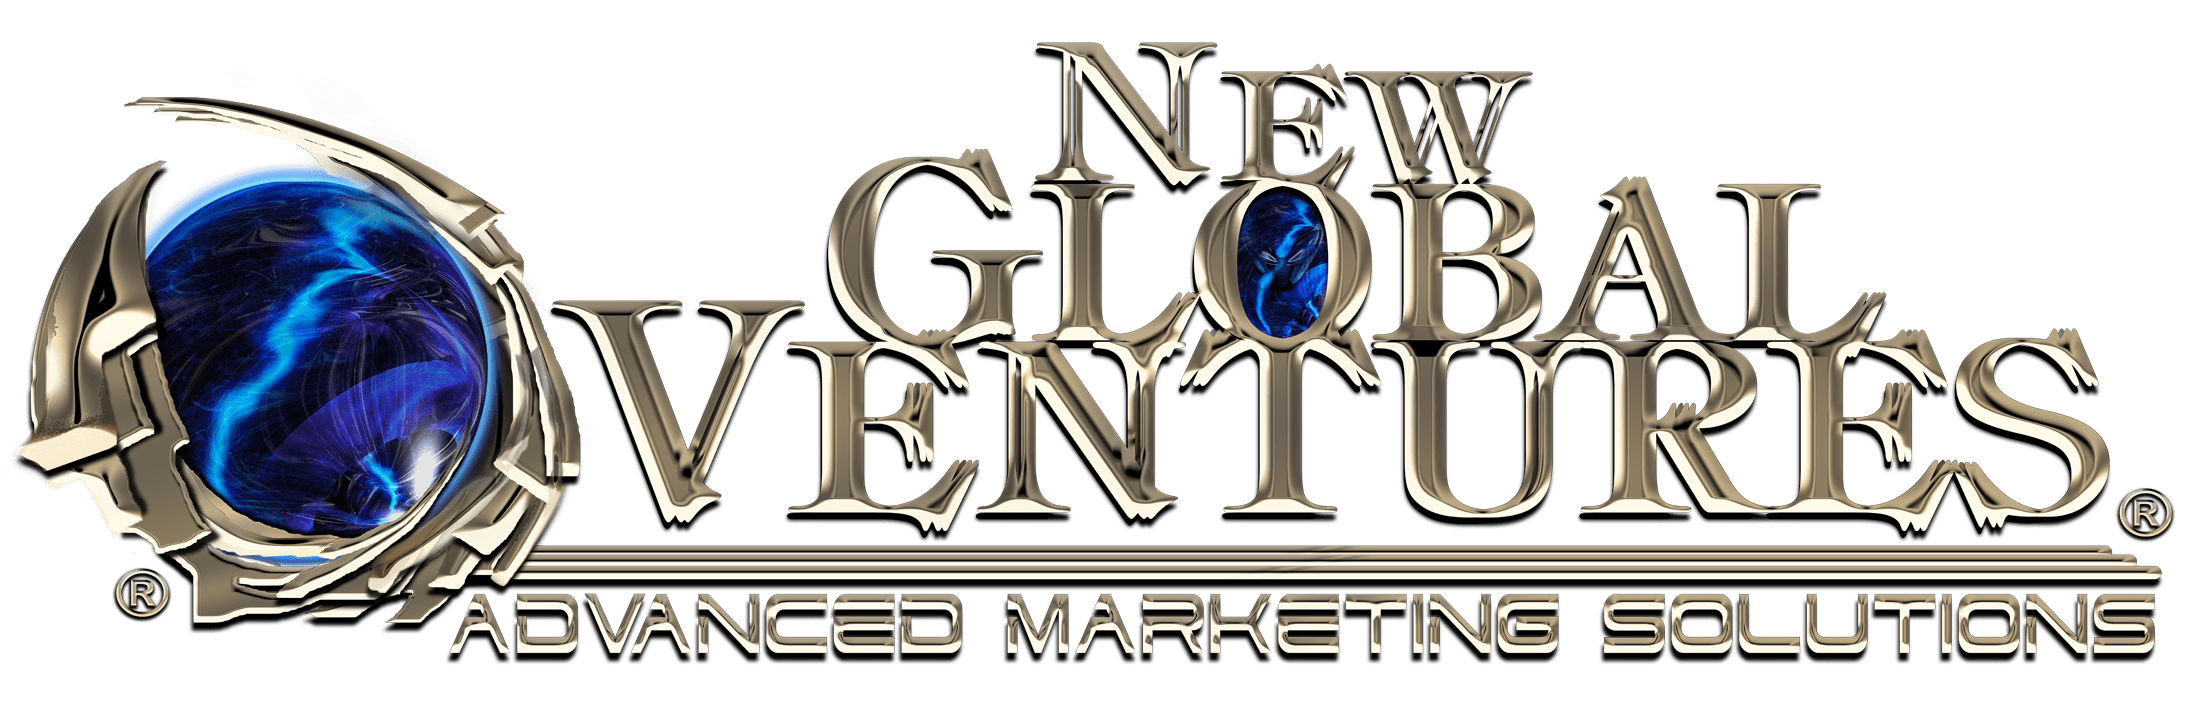 New Global Ventures Web Design & Marketing San Antonio TX